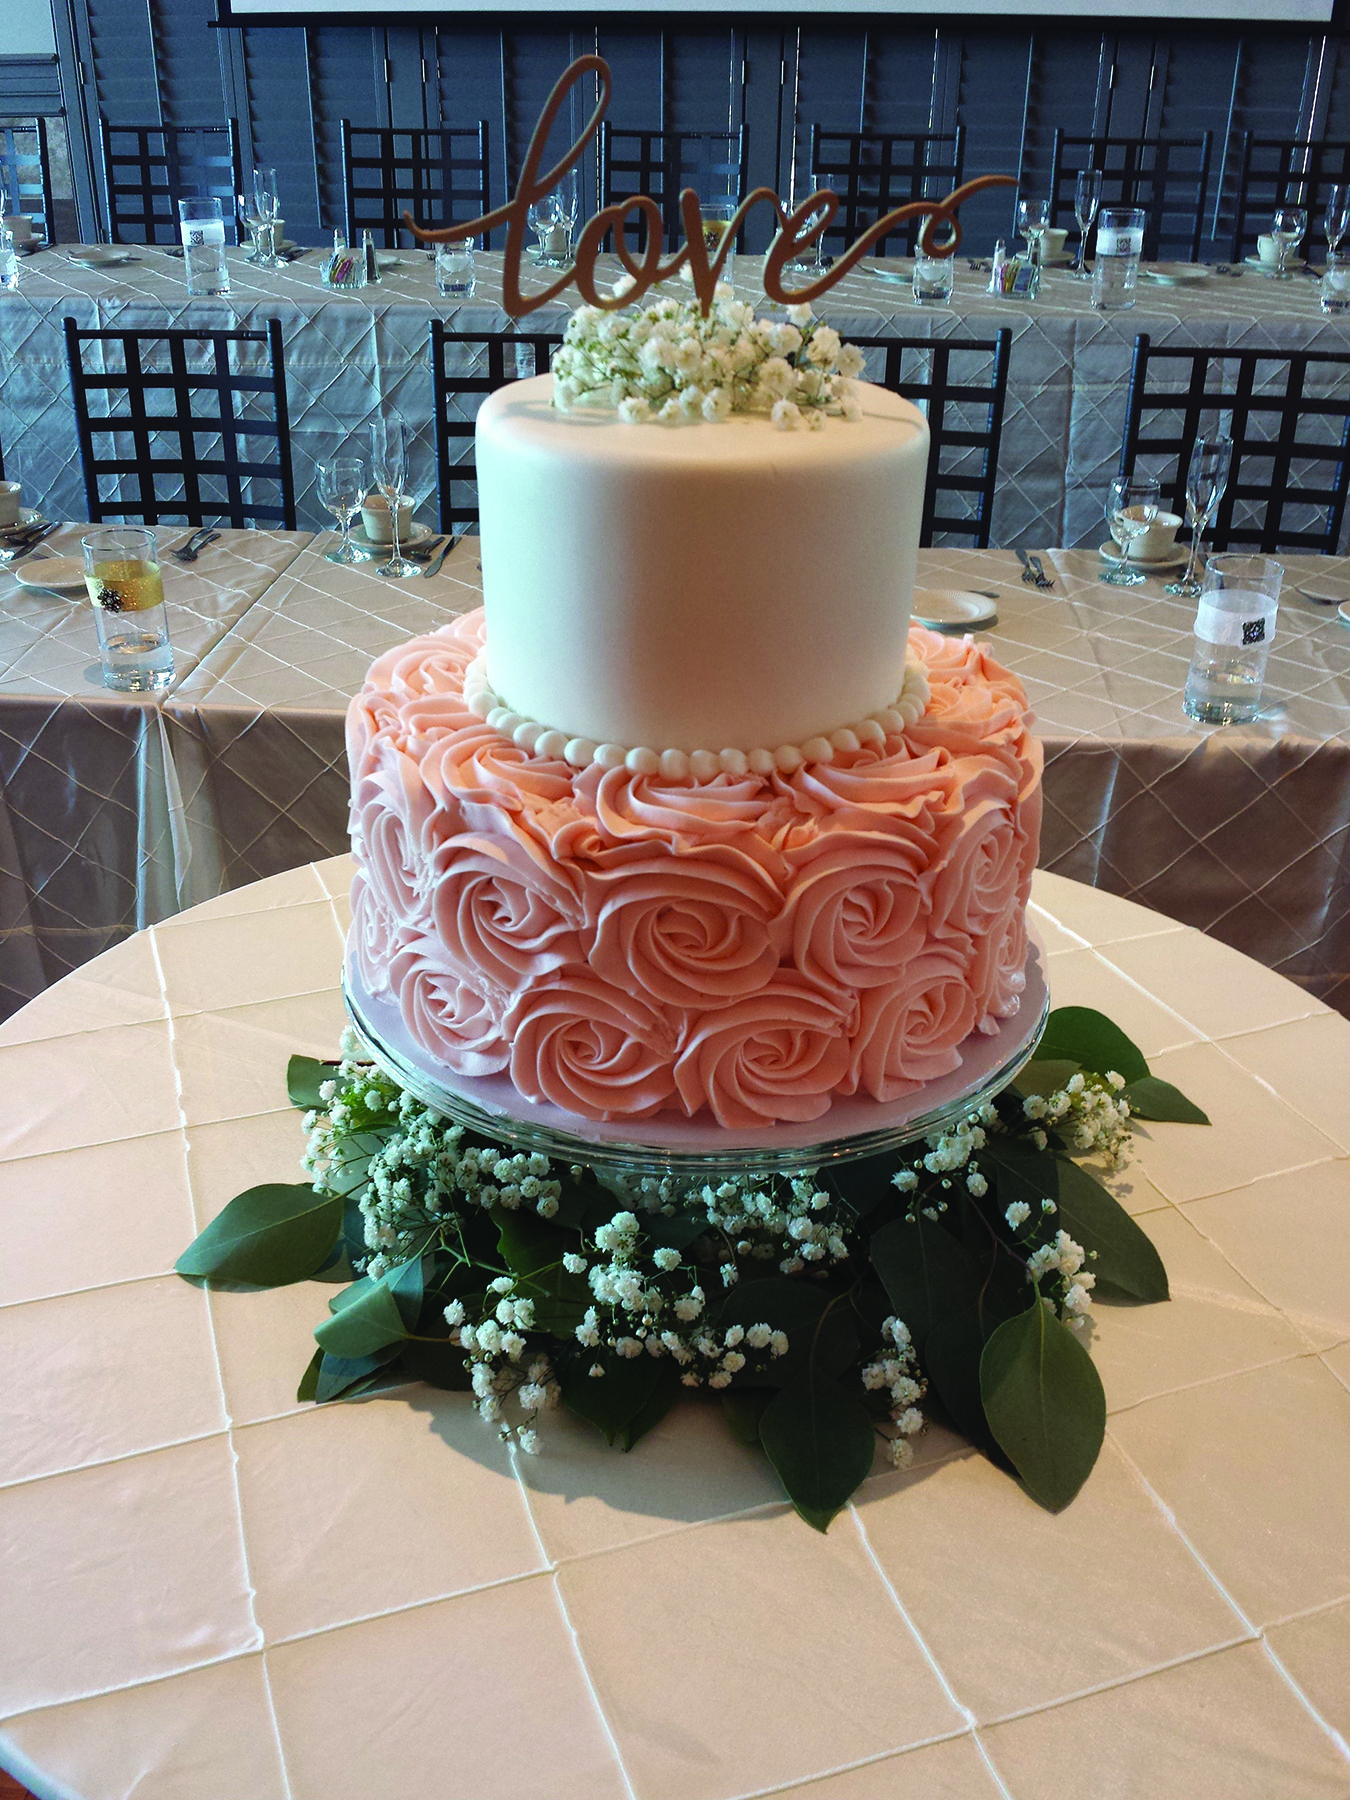 beach themed wedding cakes pinterest%0A Jessa cake  two tier buttercream wedding cake with smooth top tier and  pink rosette bottom